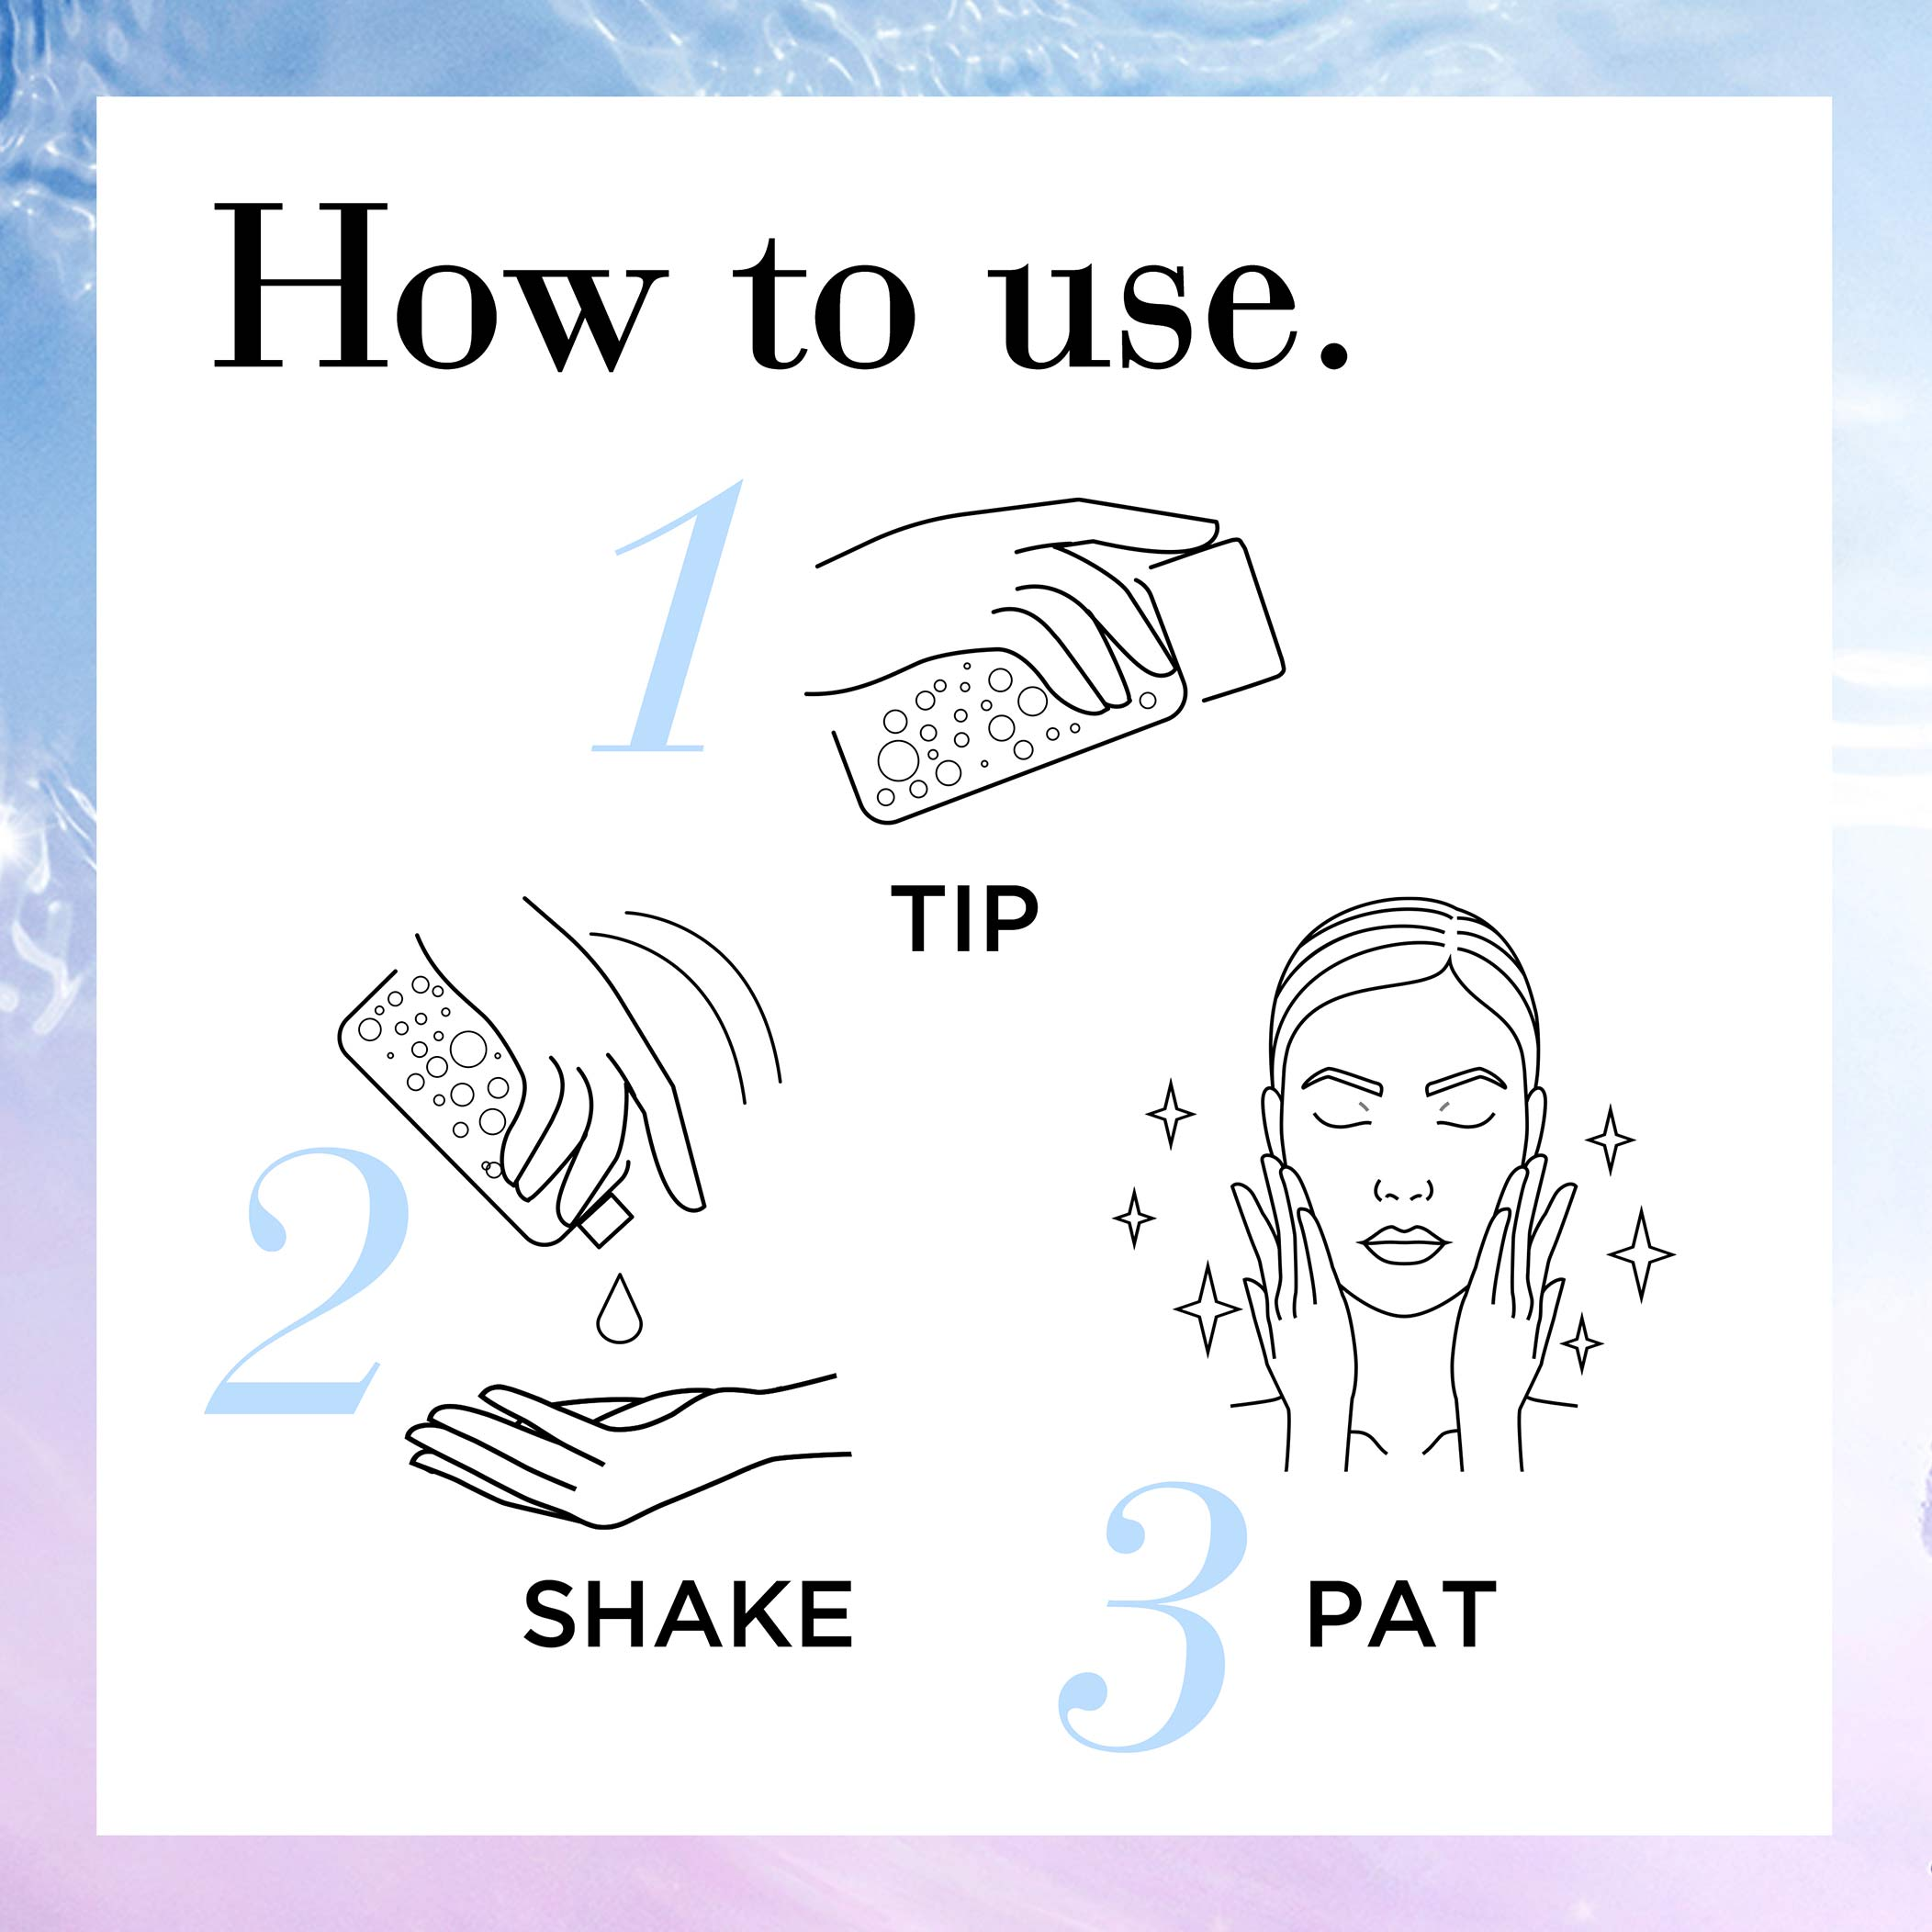 Tip the bottle, shake and pat on face